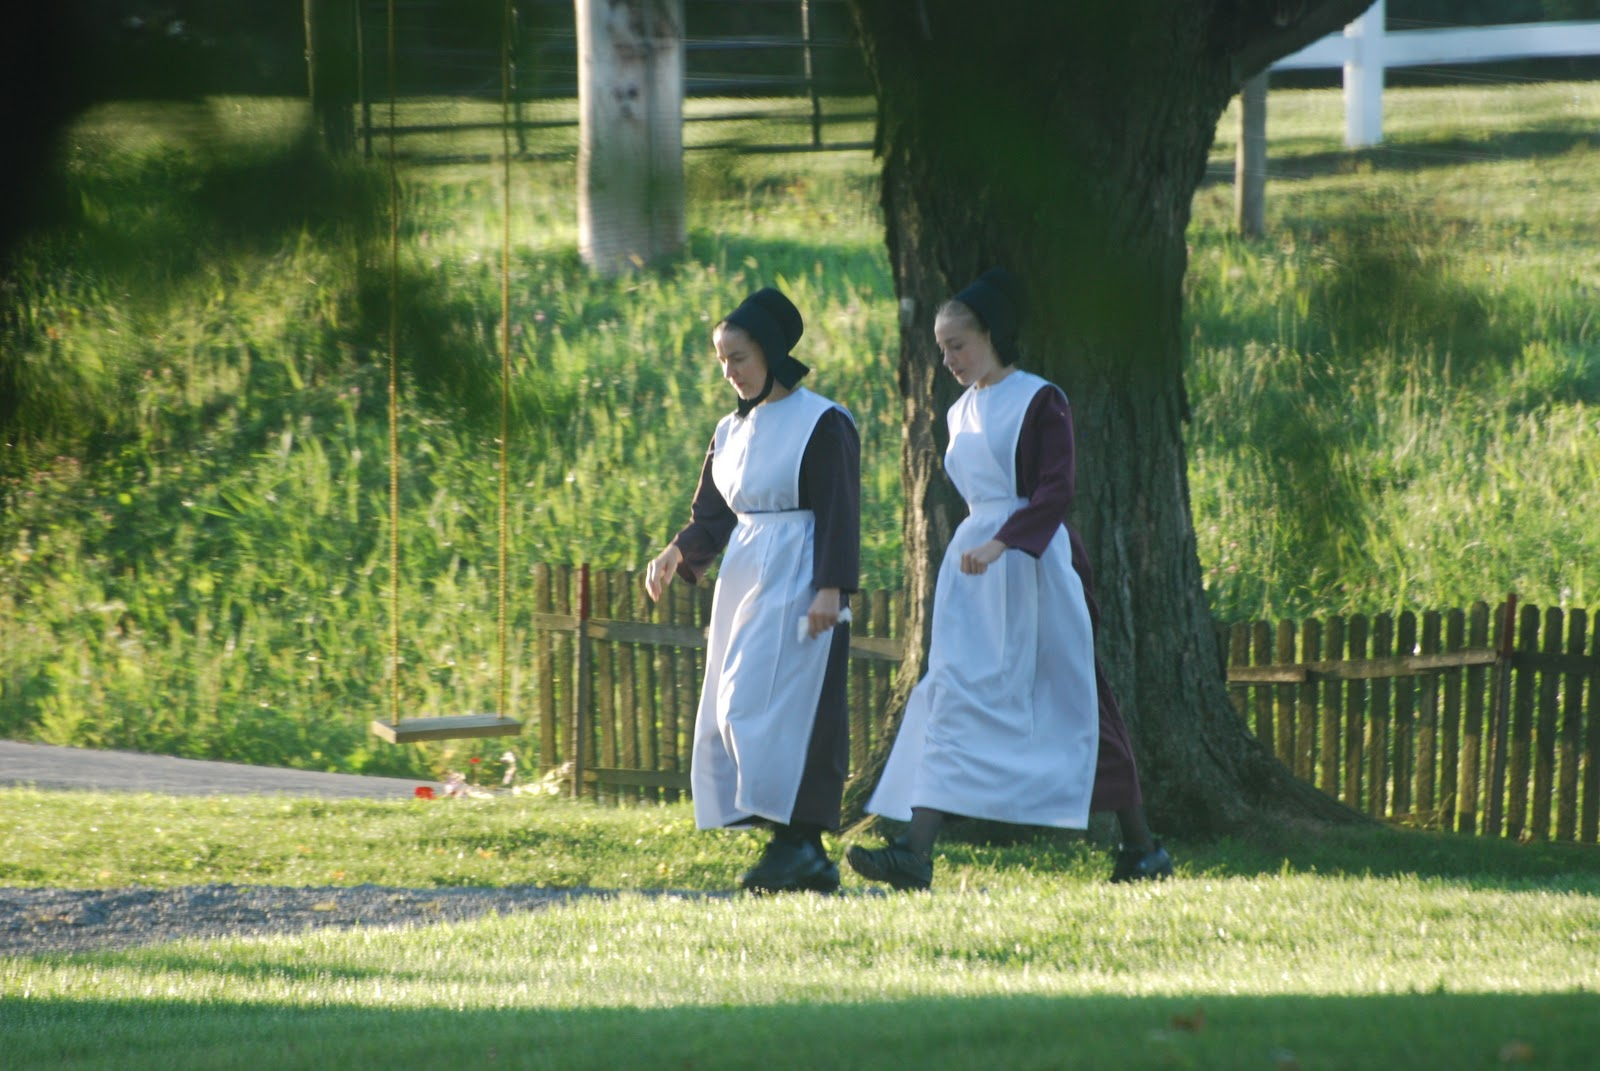 amish culture The amish: 10 things you might not know would introduce foreign values into their culture, says an article on the young center's website.